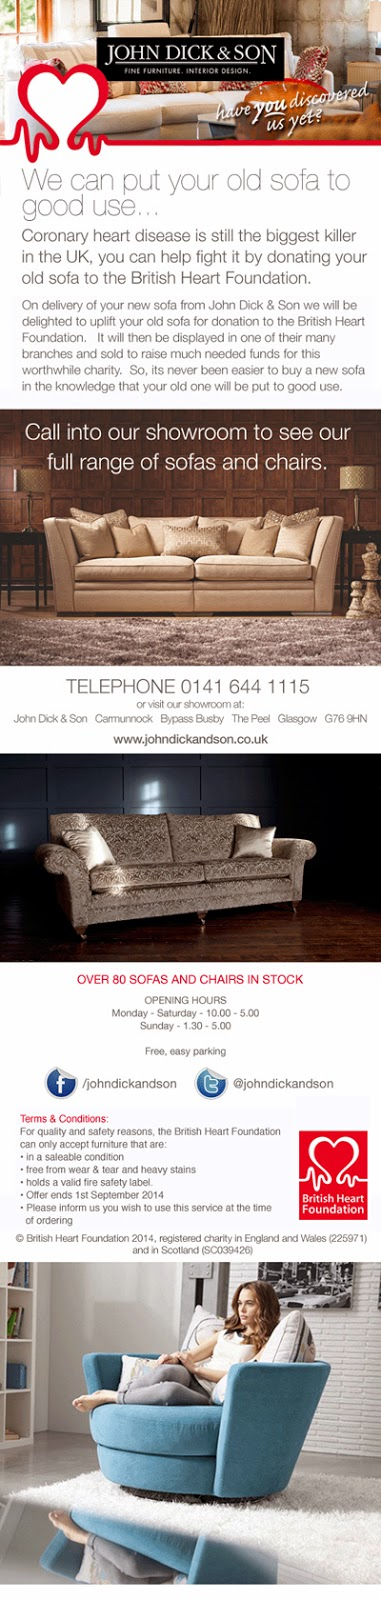 Free Sofa Uplift Glasgow Queen Bed Set John Dick And Son For Quality Safety Reasons The British Heart Foundation Can Only Accept Furniture That Are In A Saleable Condition From Wear Tear Heavy